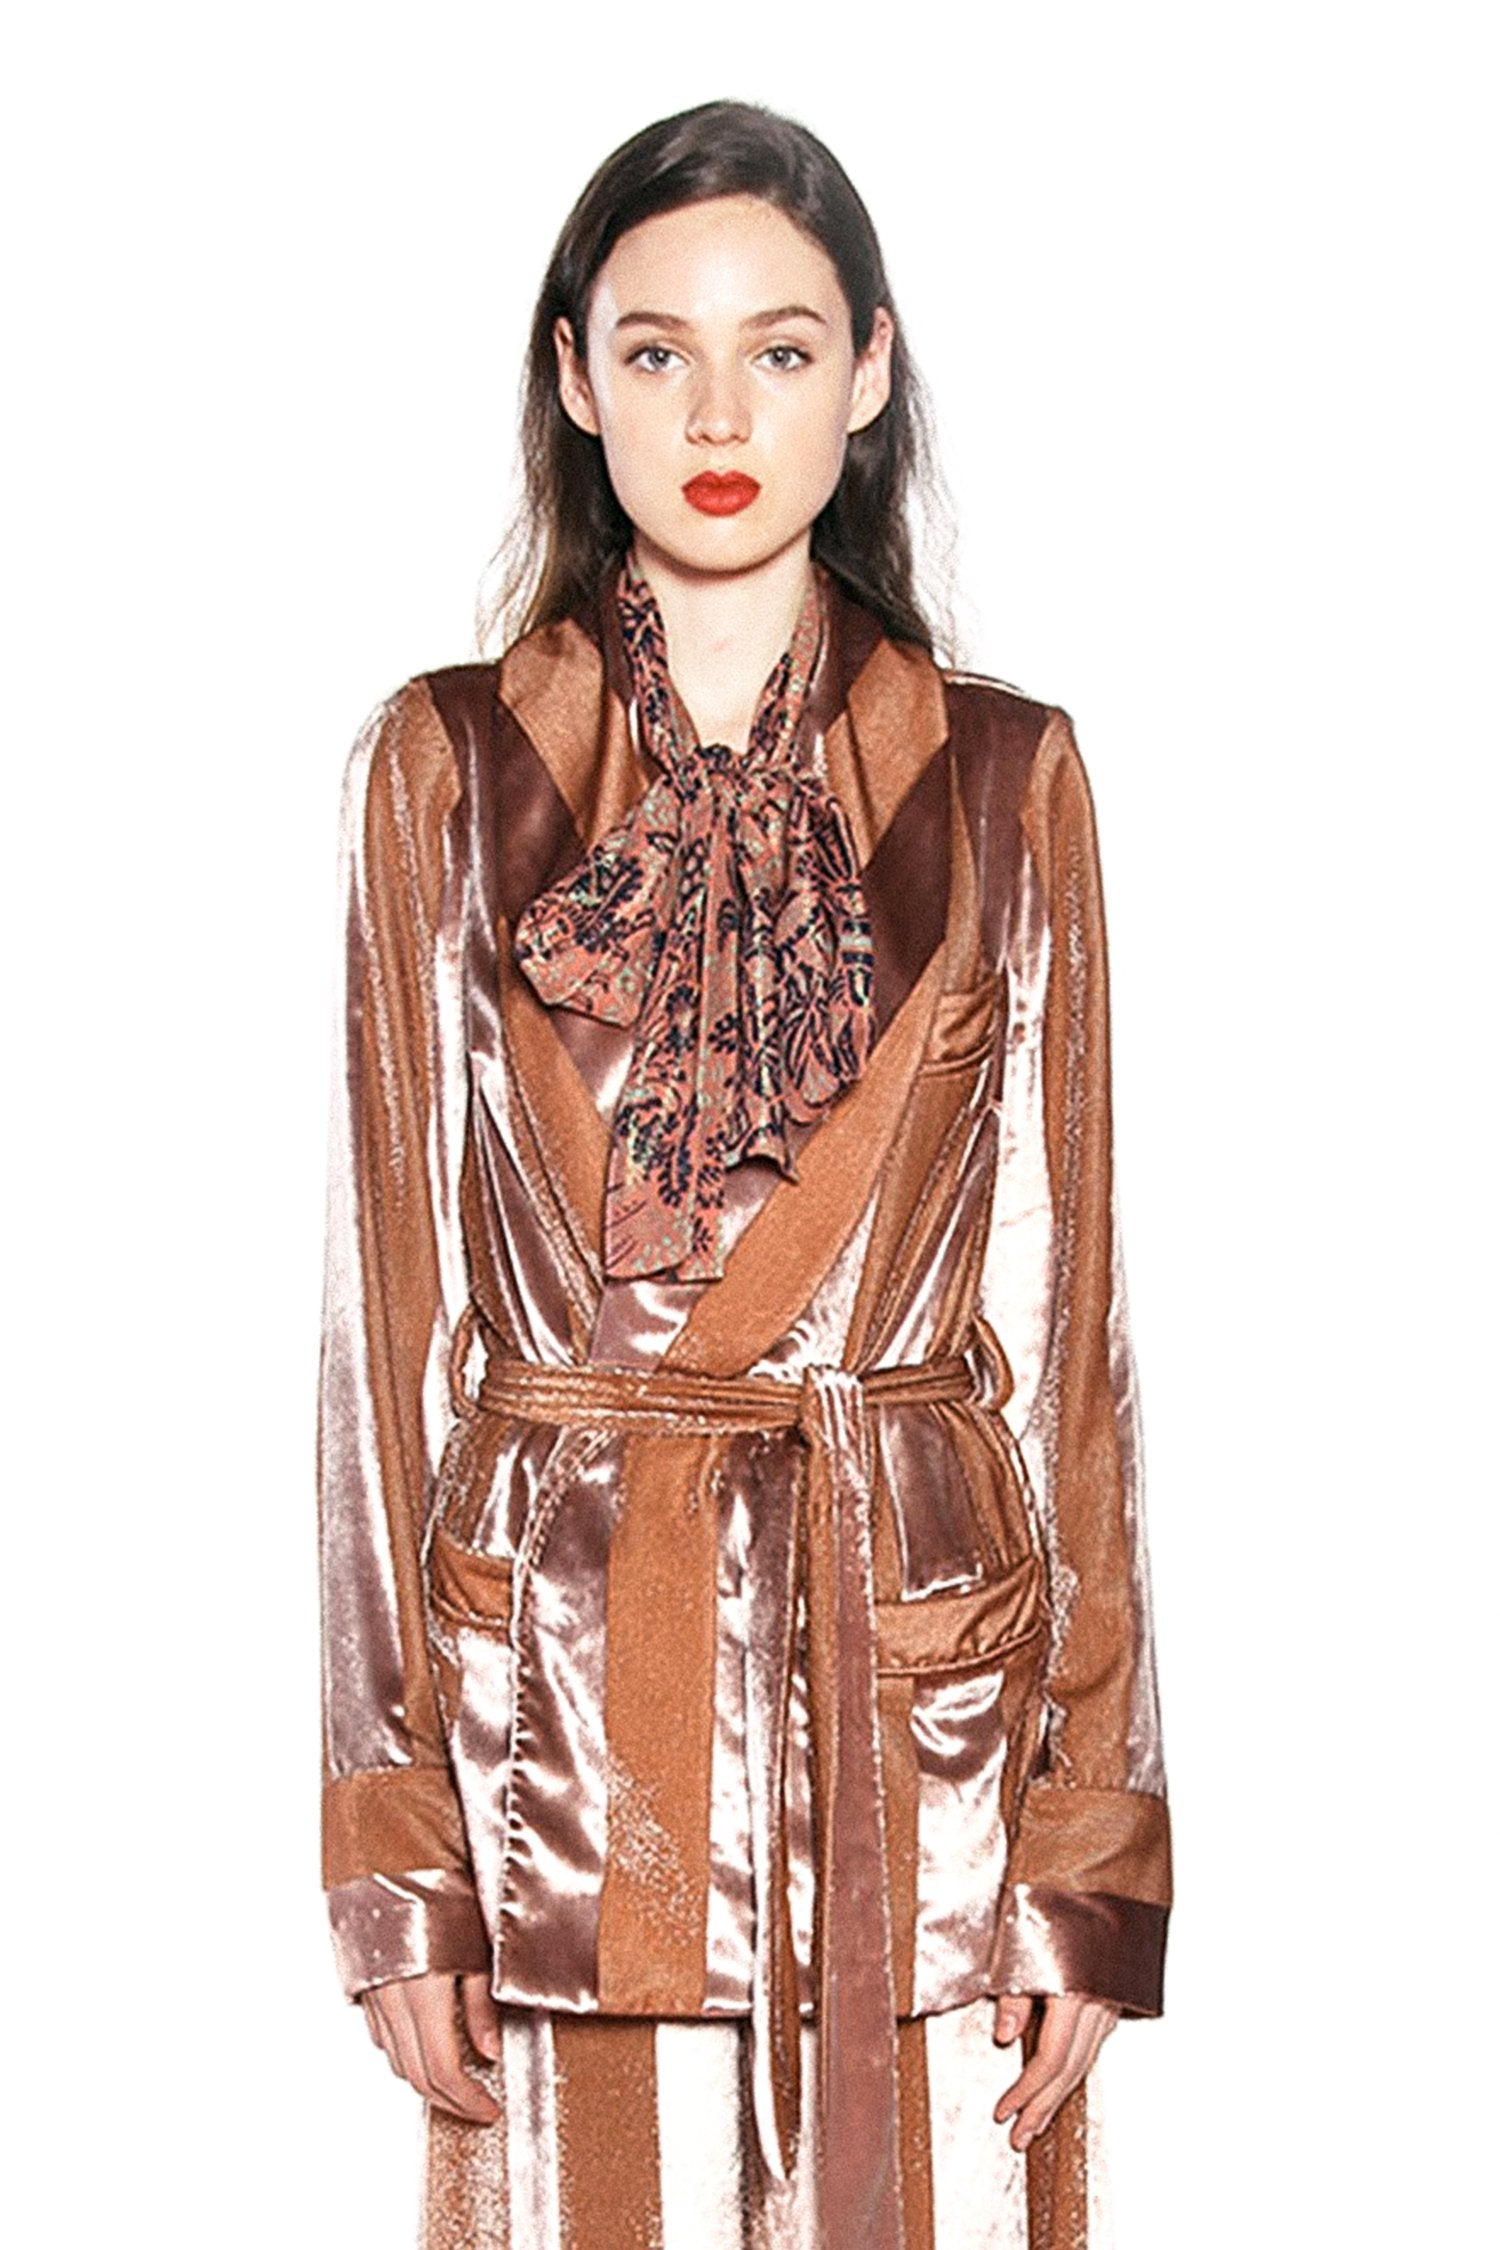 Seal It With a Kiss Stripe Velvet Jacket - Anna Sui